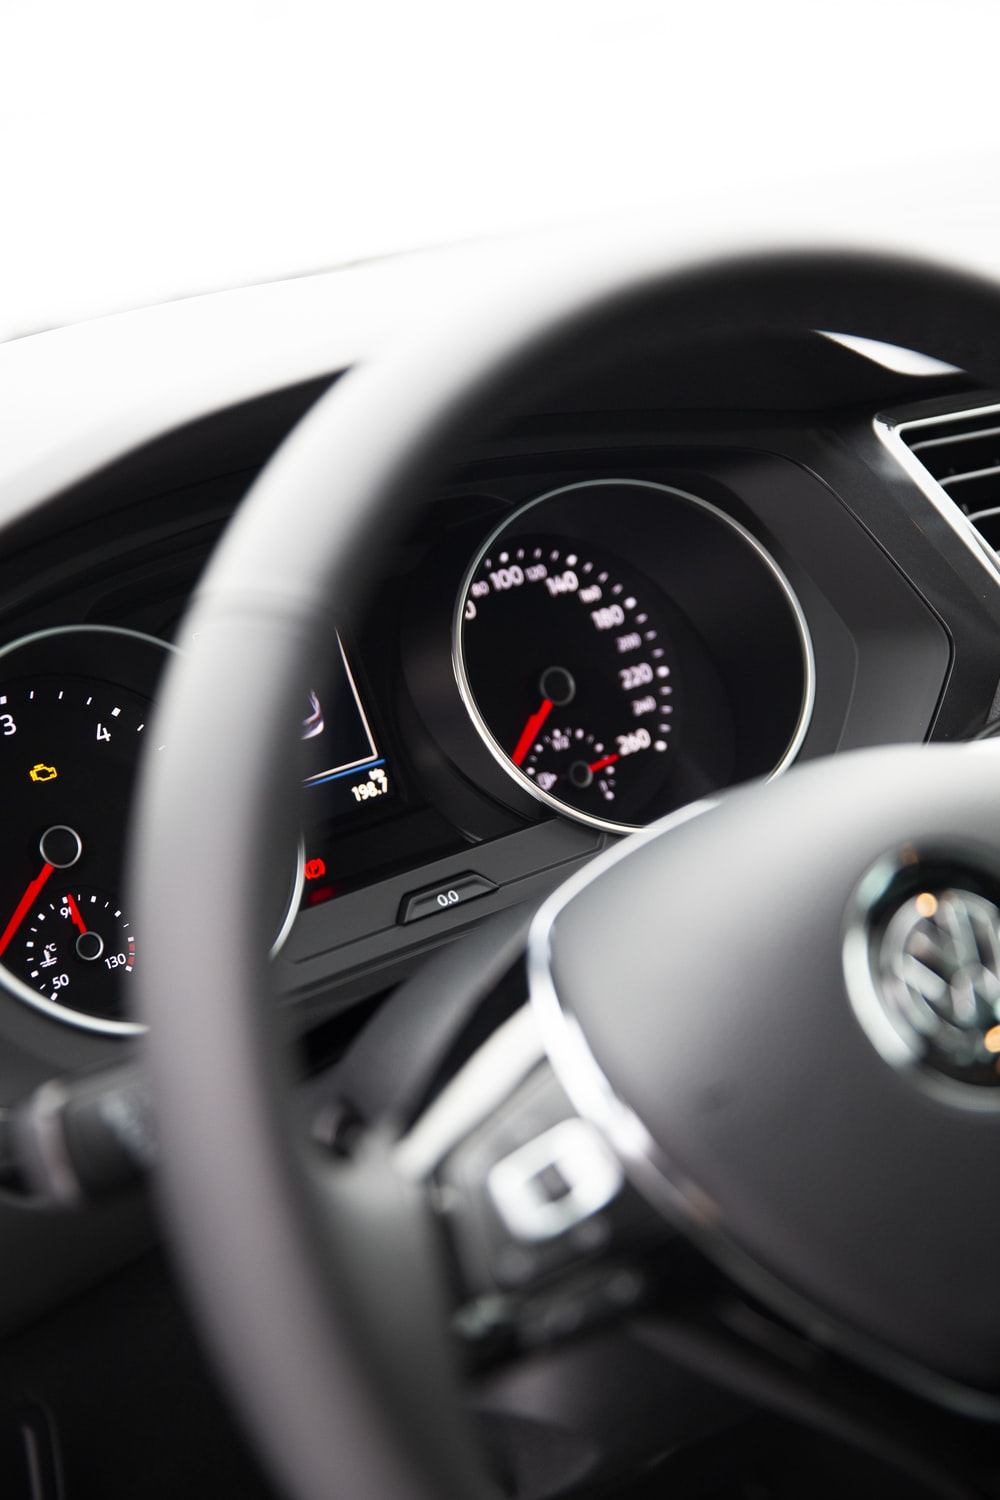 selective focus photography of vehicle analog speedometer control panel